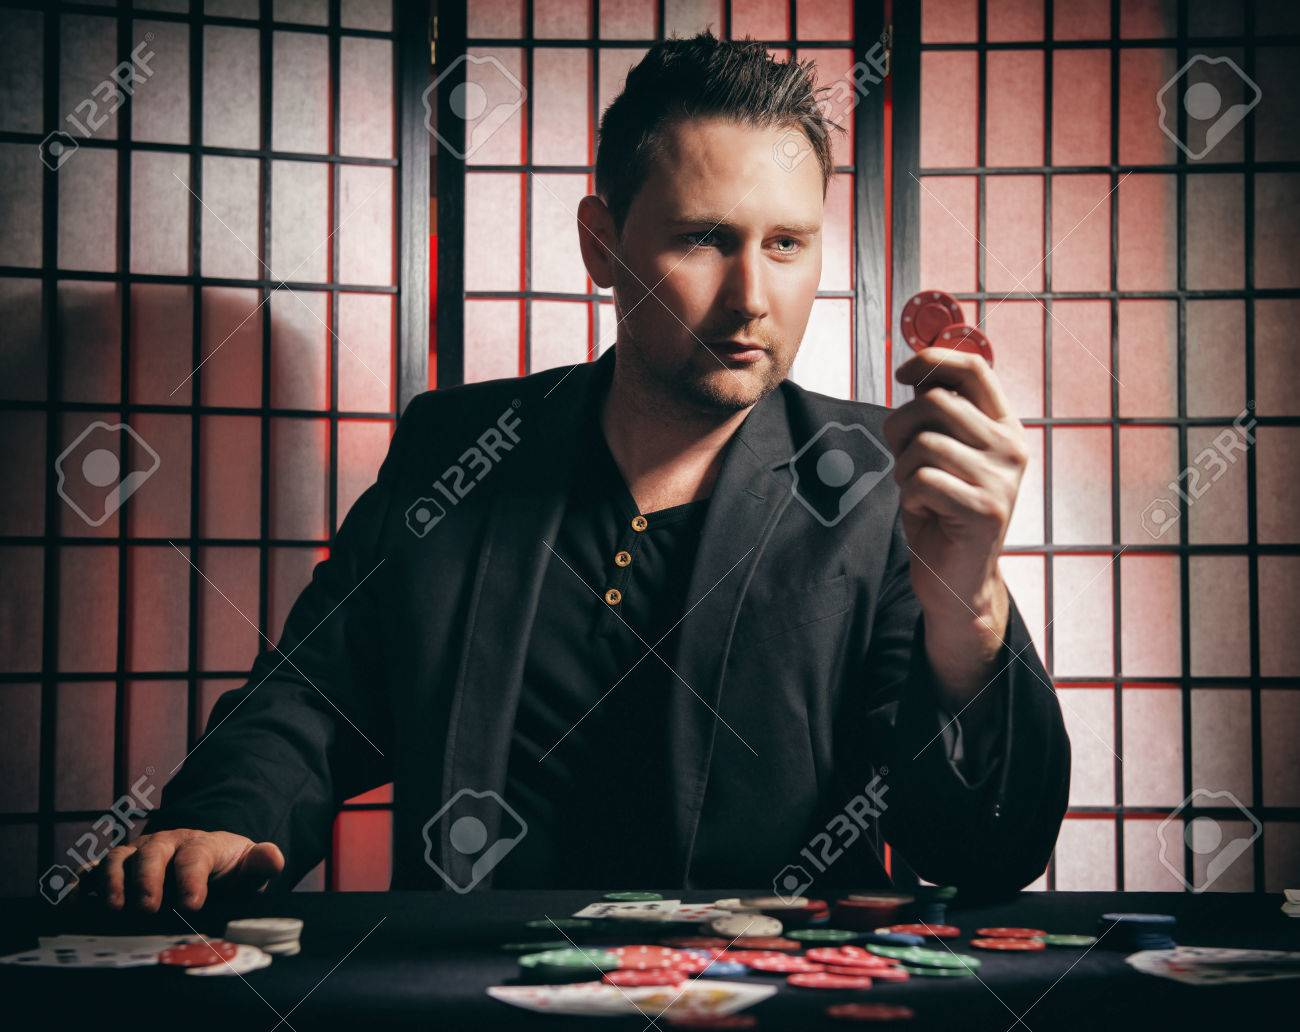 Concept A High Stakes Poker Player Is Winning Big And Feeling Stock Photo Picture And Royalty Free Image Image 65739976